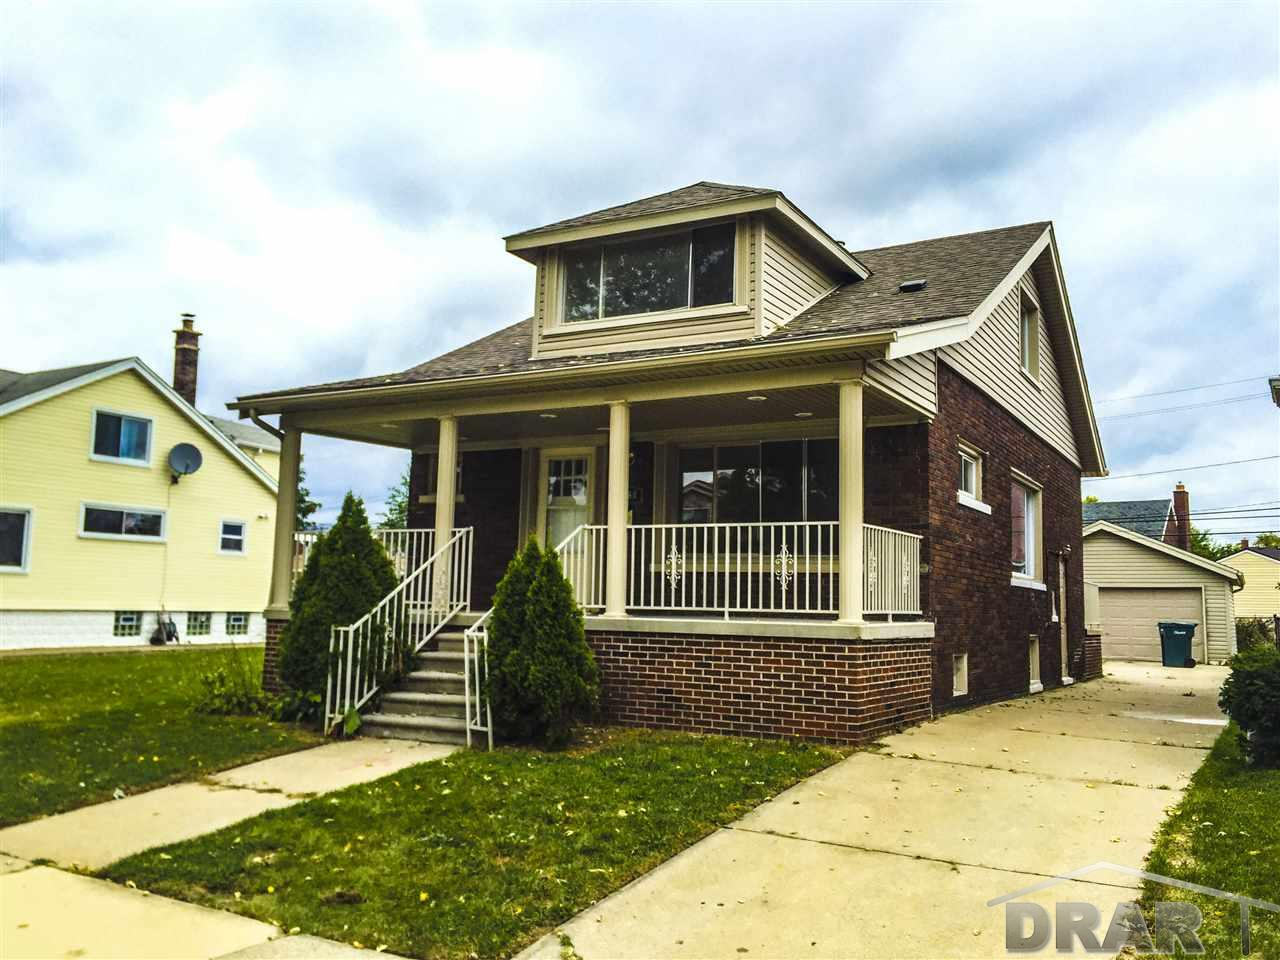 Rental Homes for Rent, ListingId:35889396, location: 4960 ORCHARD UNIT 1 Dearborn 48126